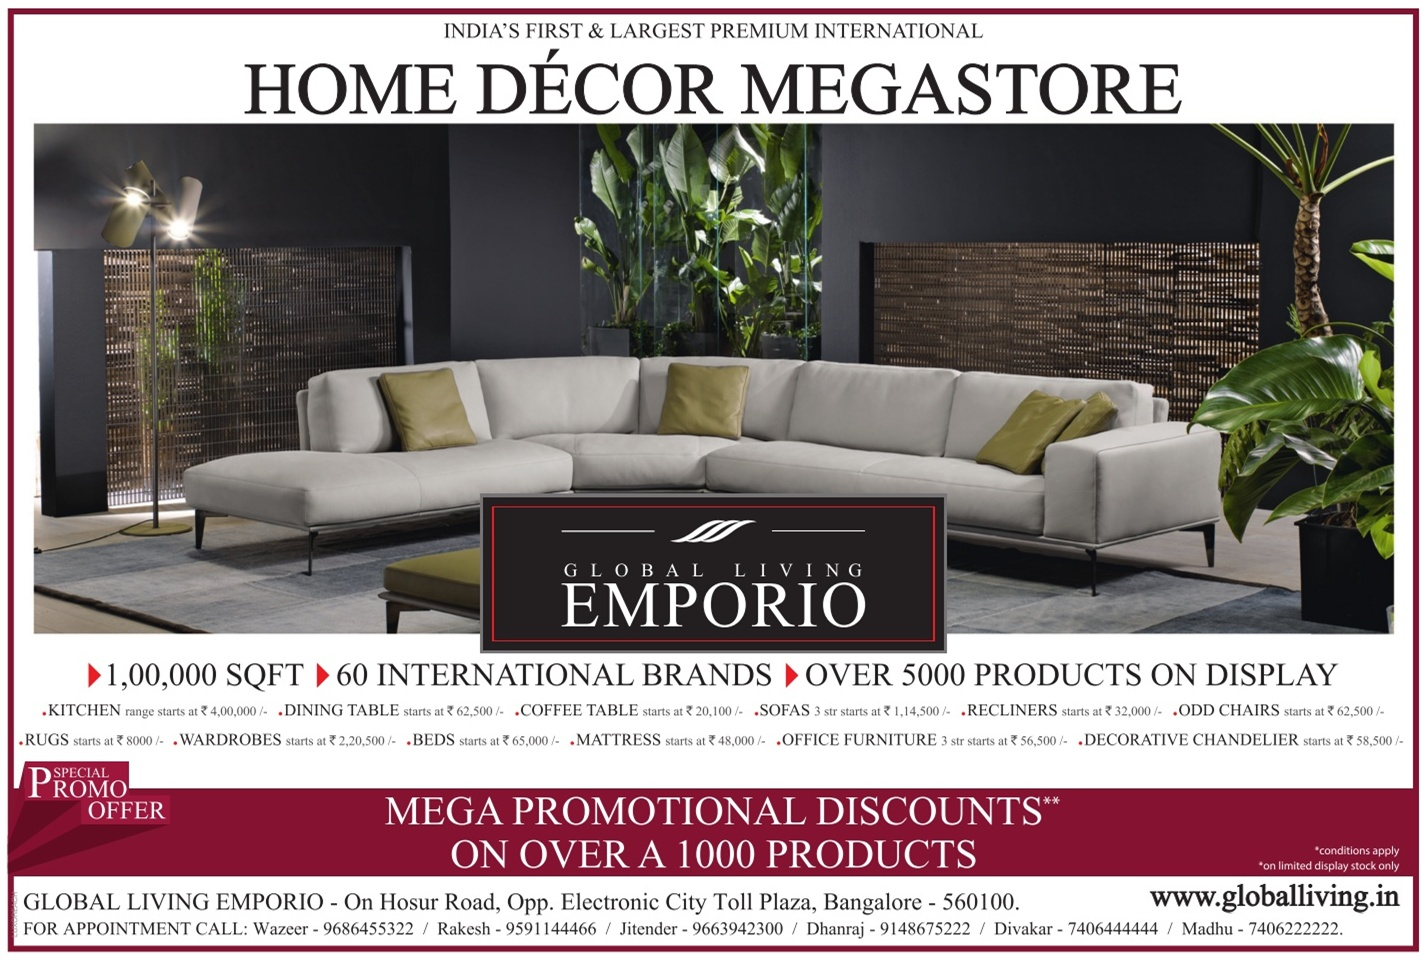 Global Living Emporio Home Decor Mega Store Mega Promotional